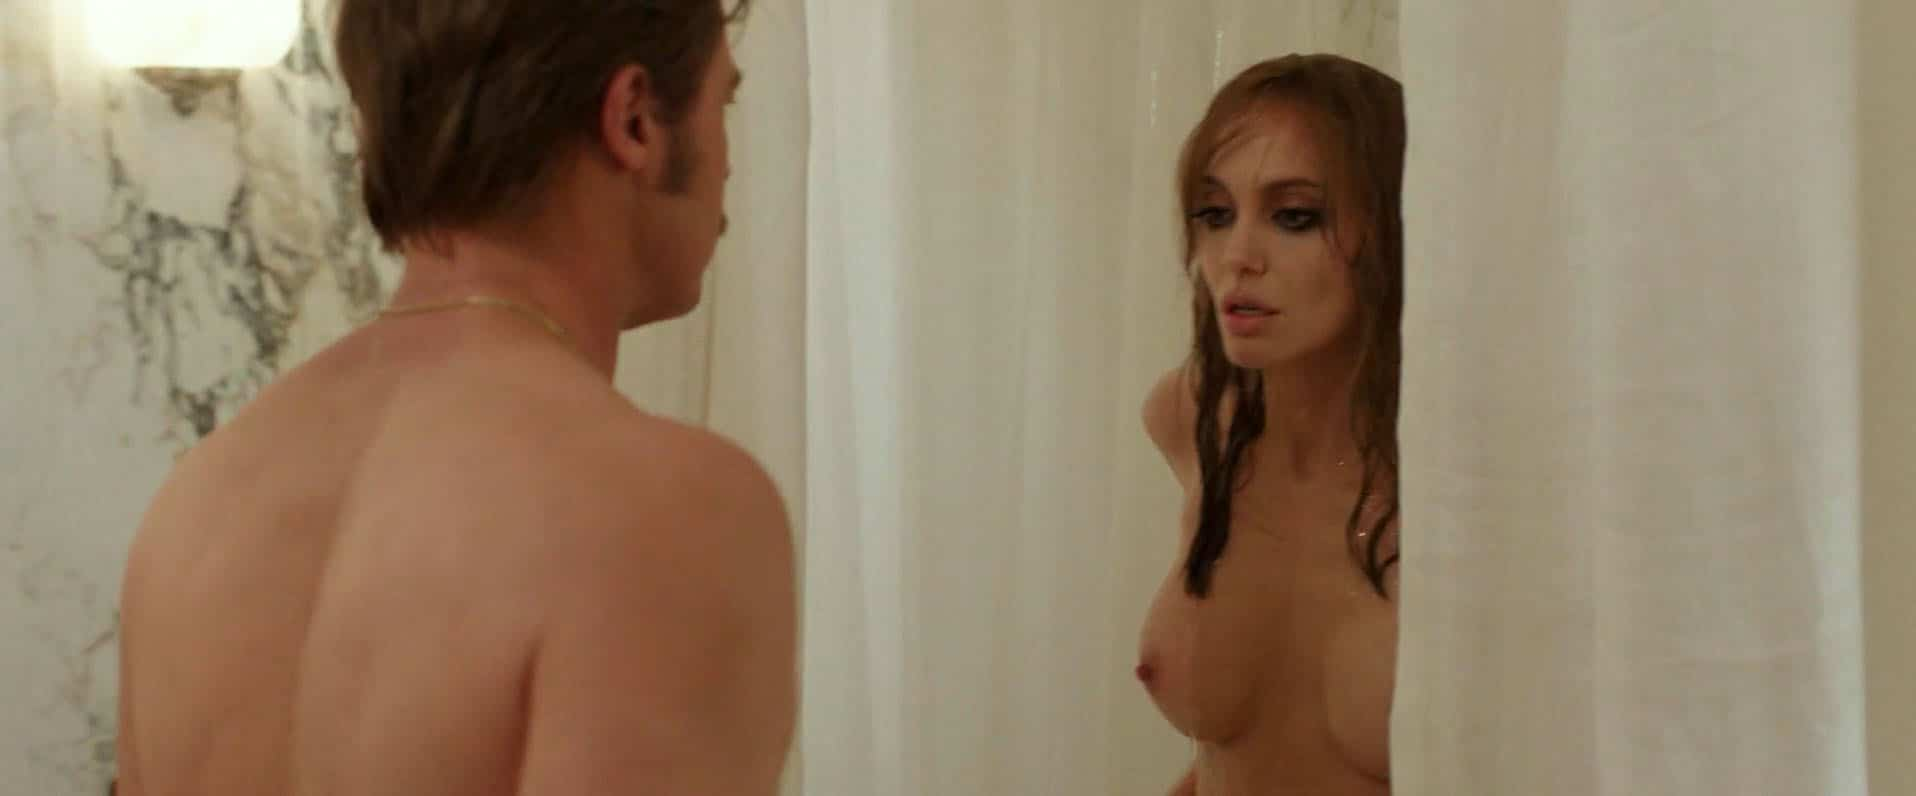 Hot Nude Angelina Jolie 98